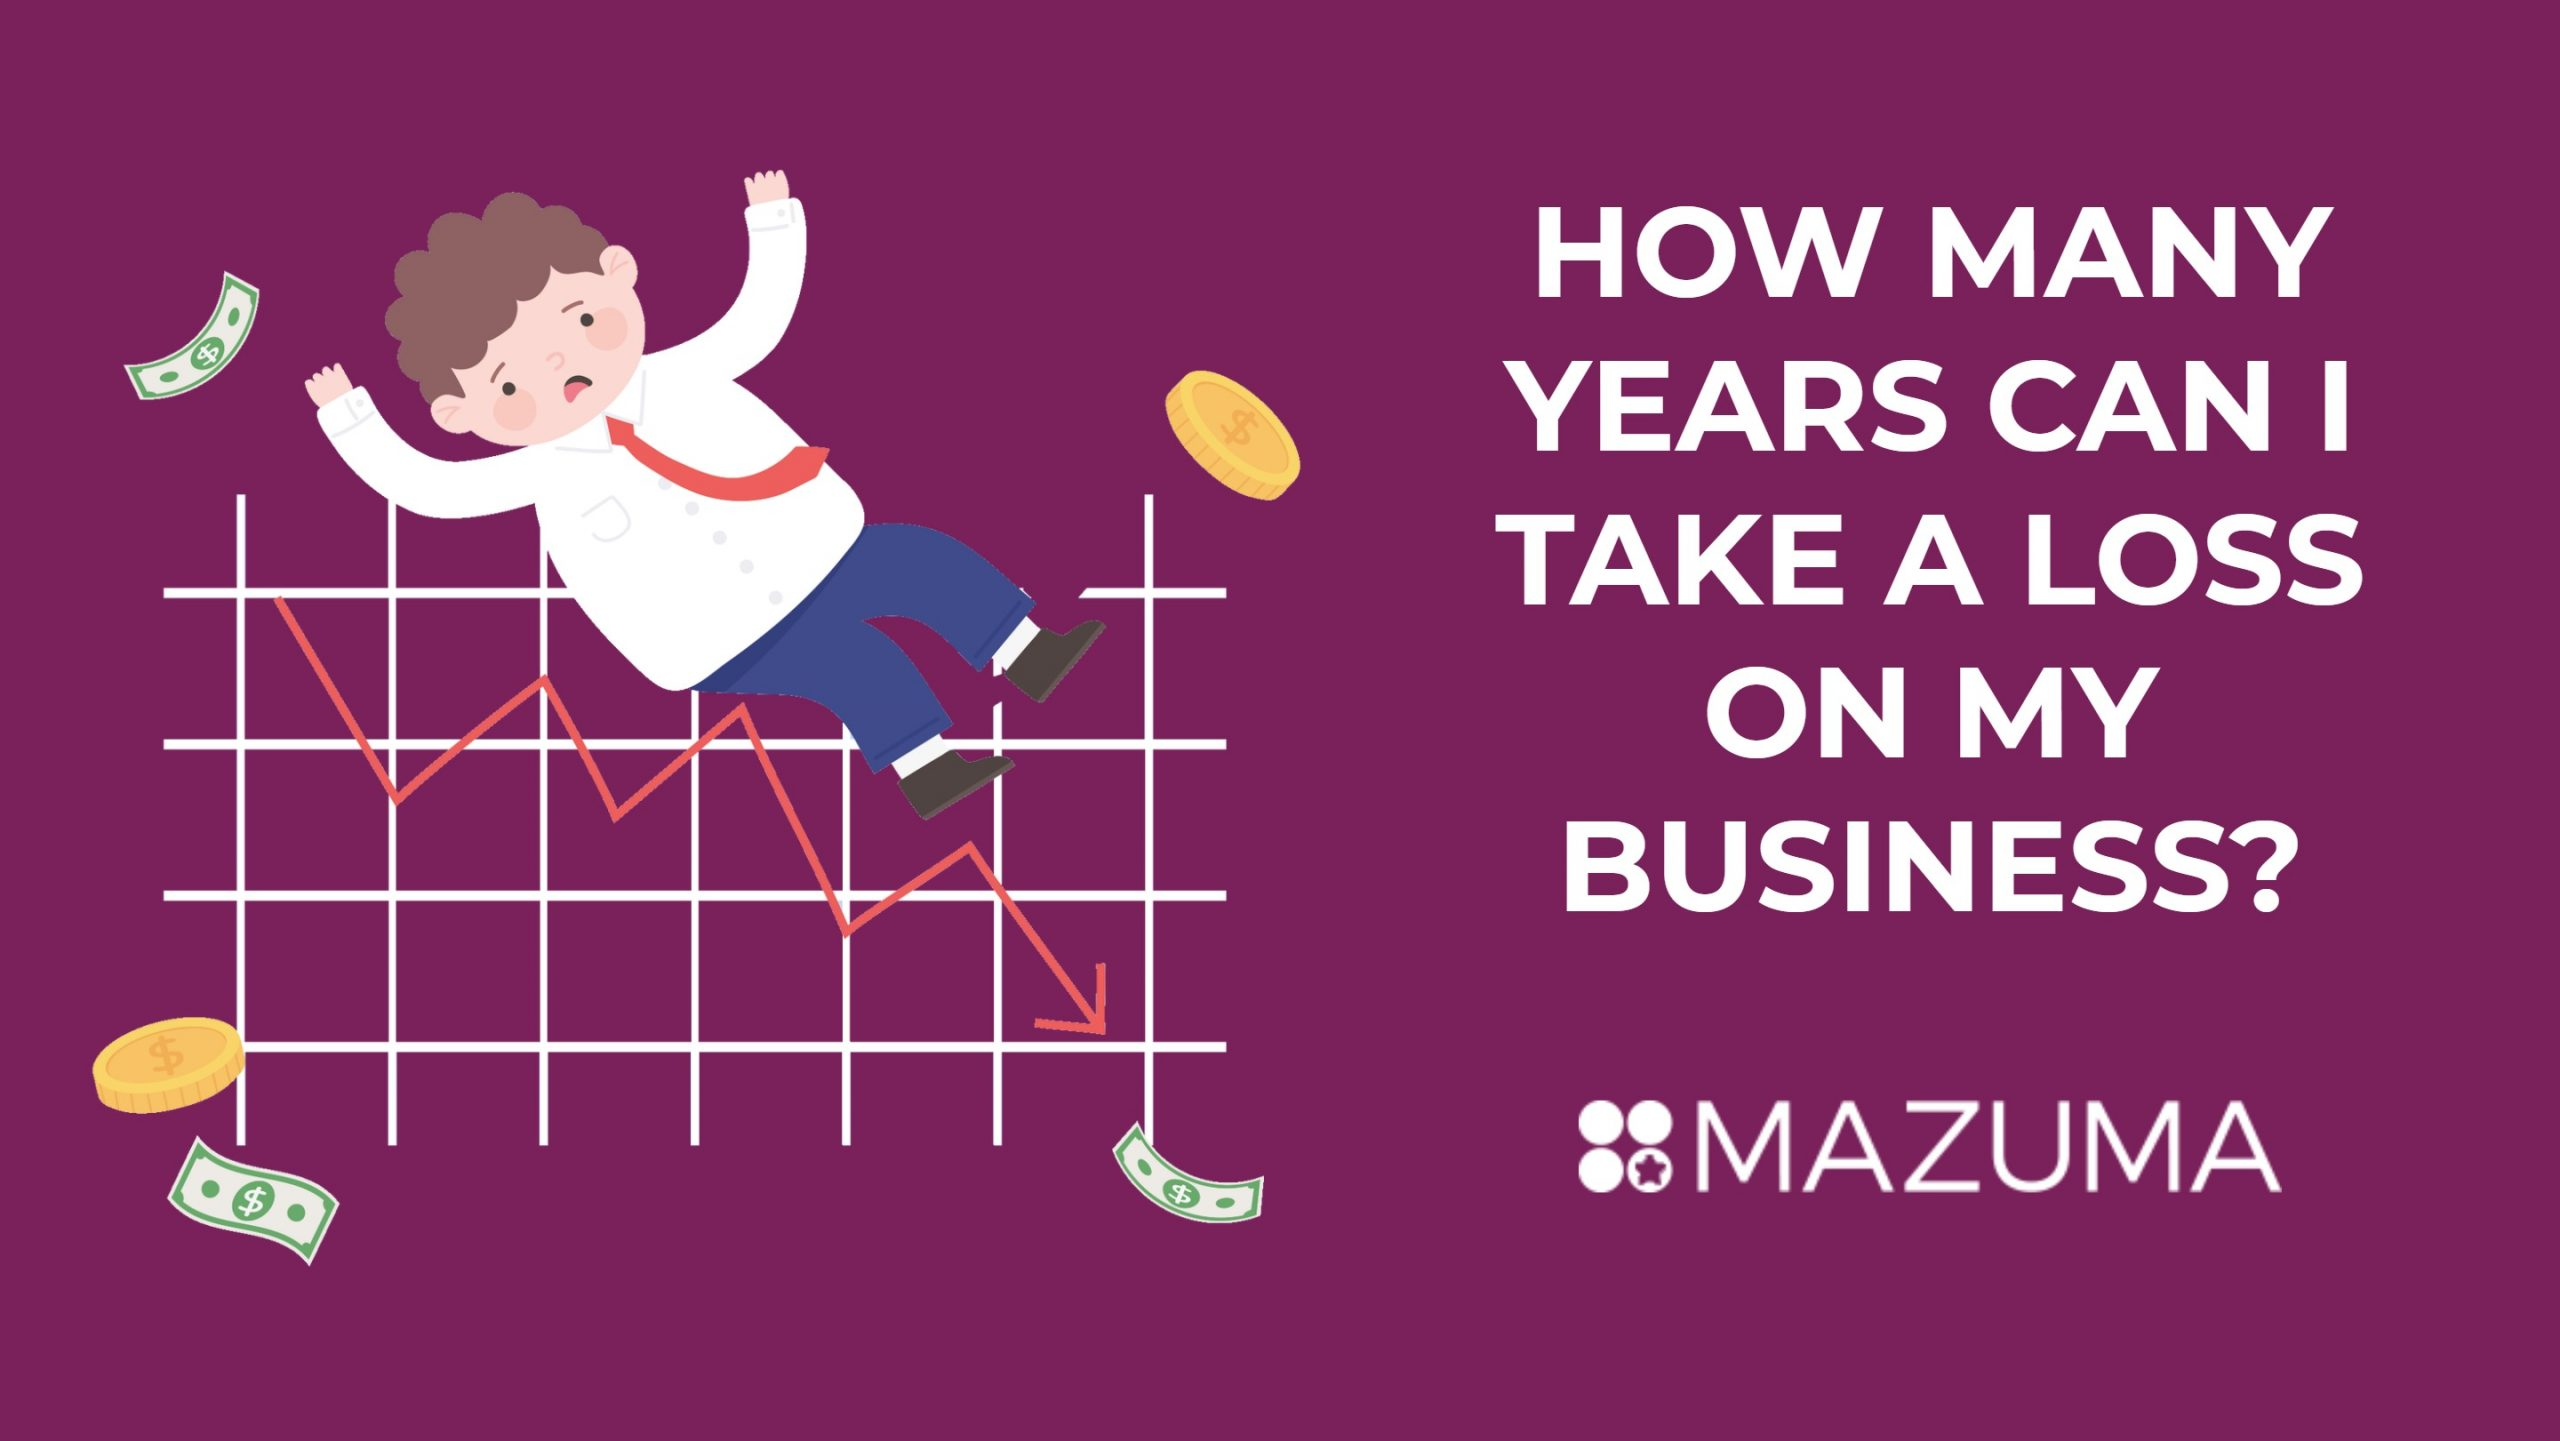 How Many Years Can I Take a Loss on My Business?